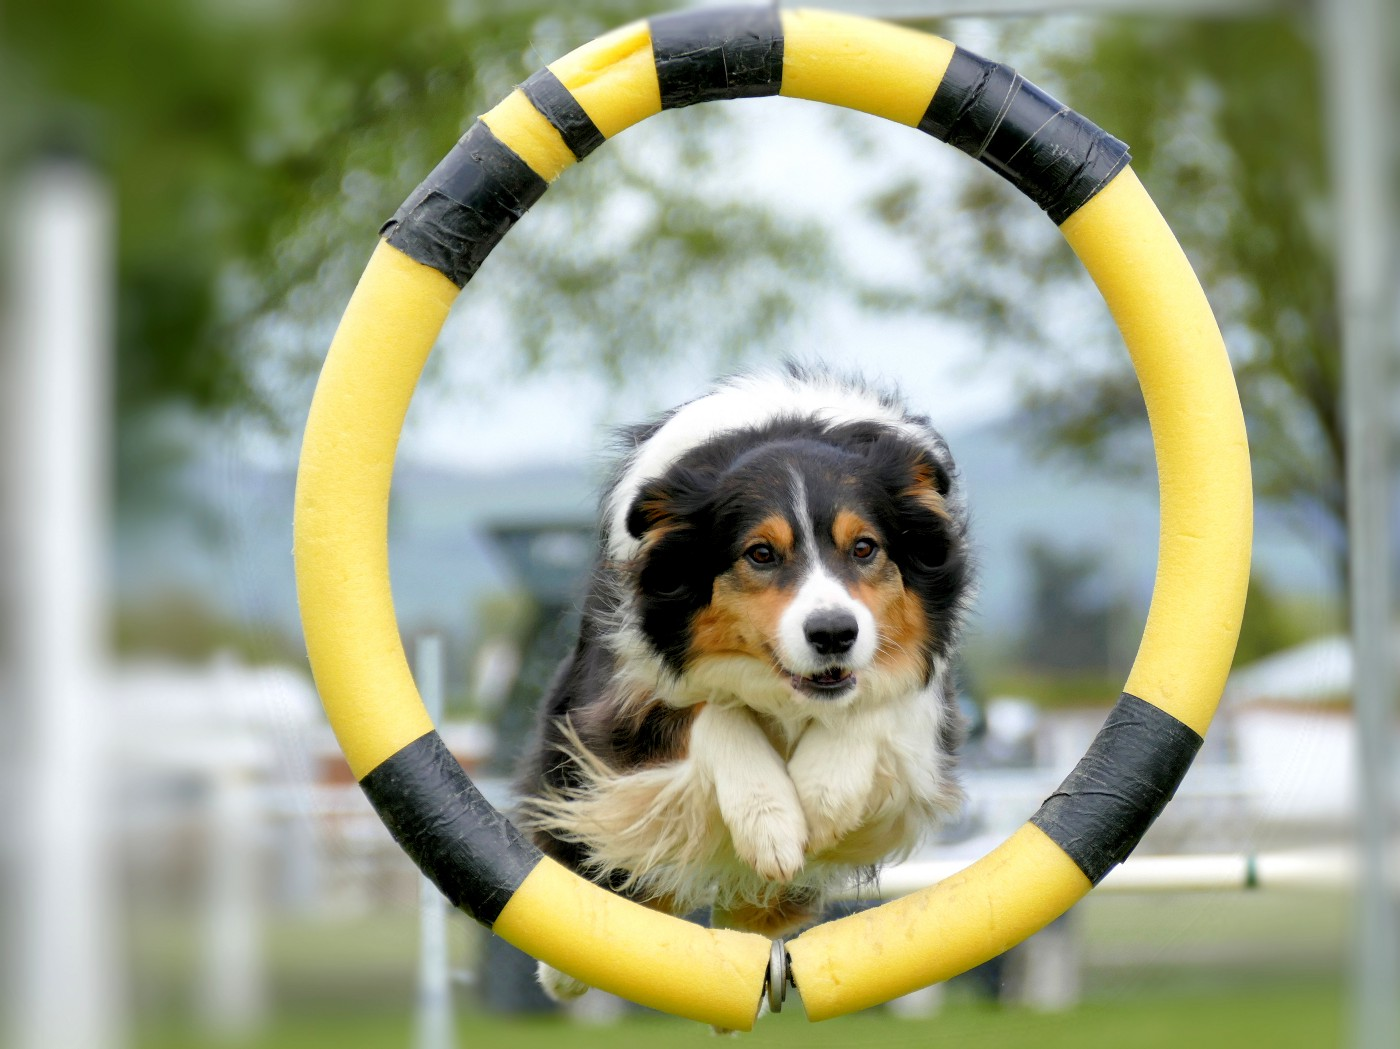 tri-color dog jumping through a hoop